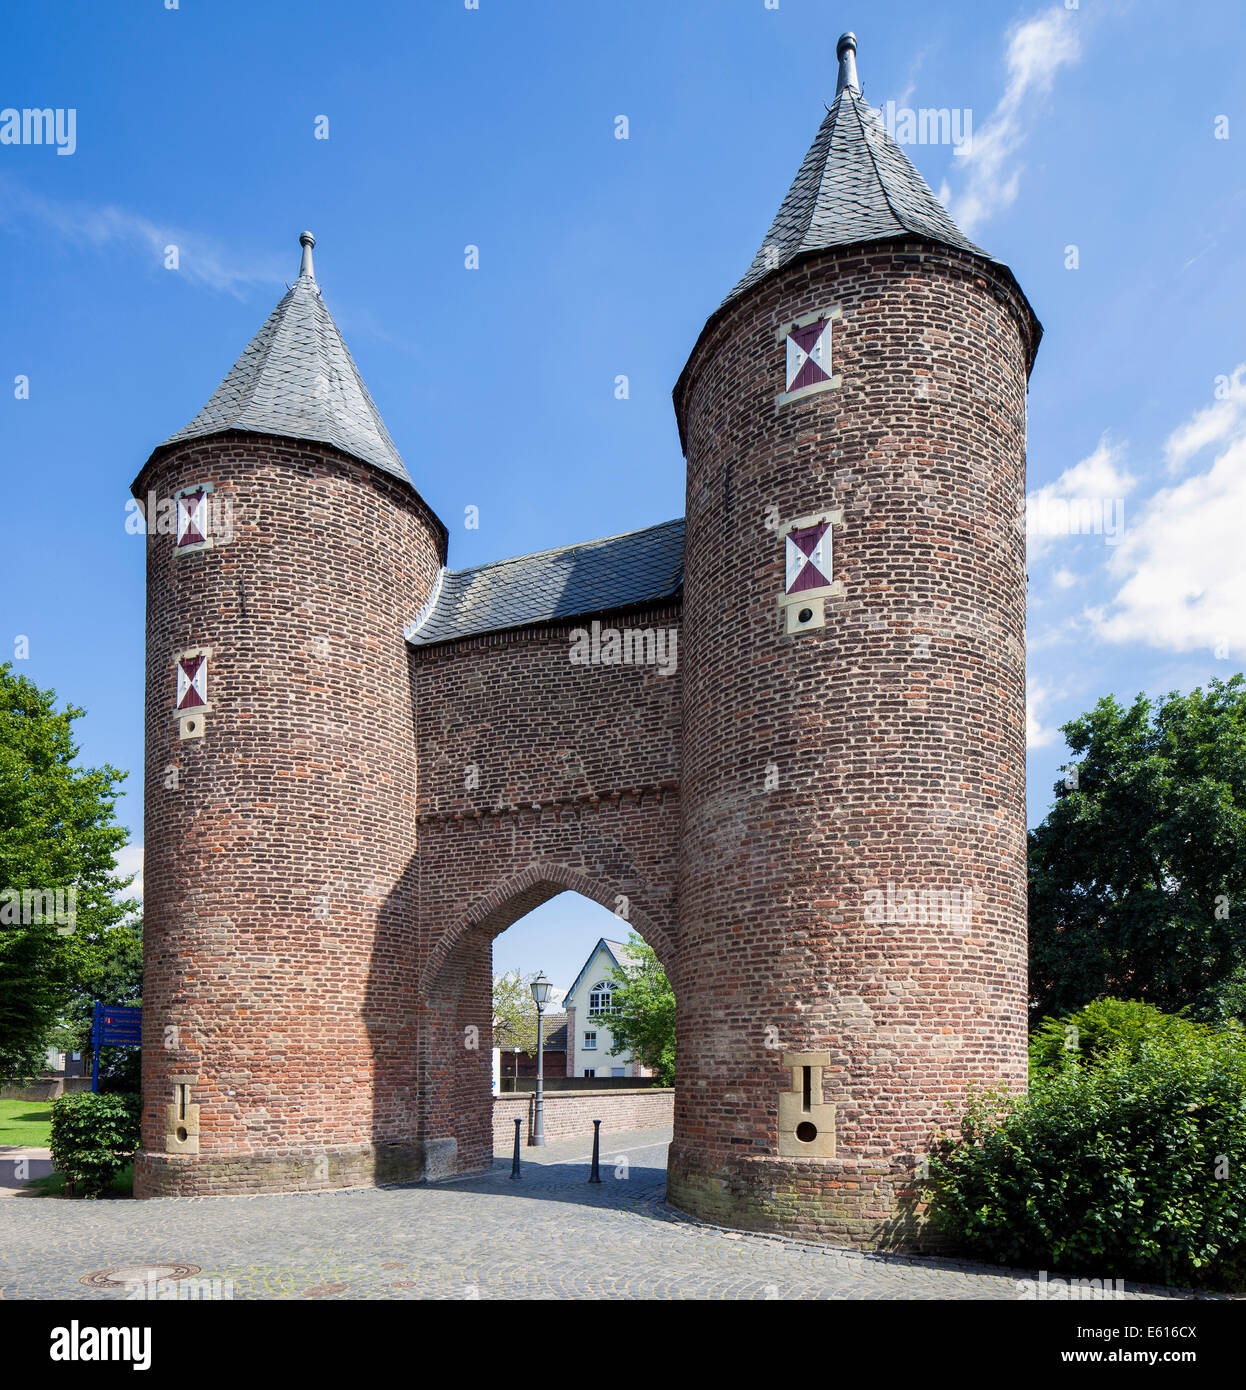 Klever Gate, northern gate of the medieval fortifications, Xanten, Lower Rhine, North Rhine-Westphalia, Germany - Stock Image